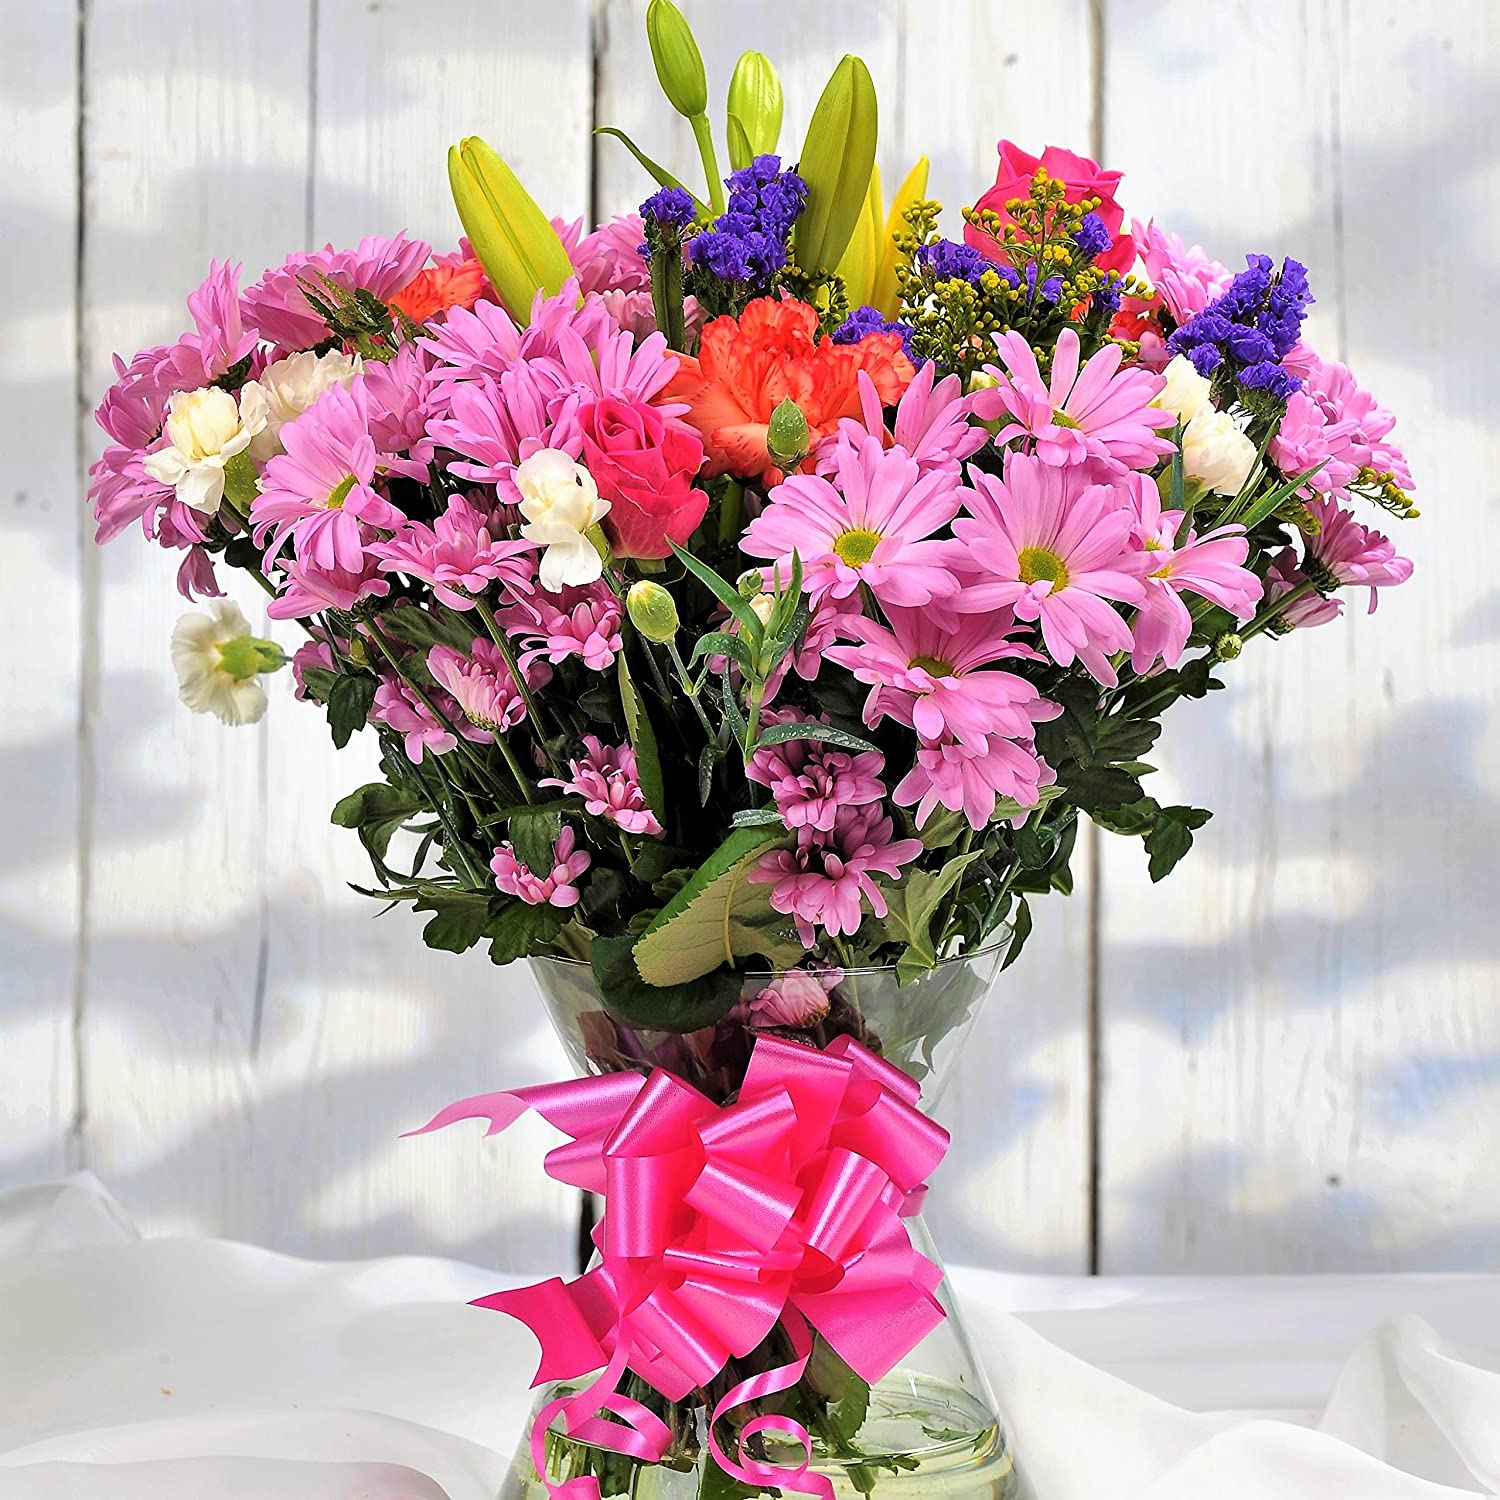 Bouquets sprays wreaths garden outdoors bouquets fresh best value fresh flowers delivered stunning mixed flower bouquet free next day delivery in izmirmasajfo